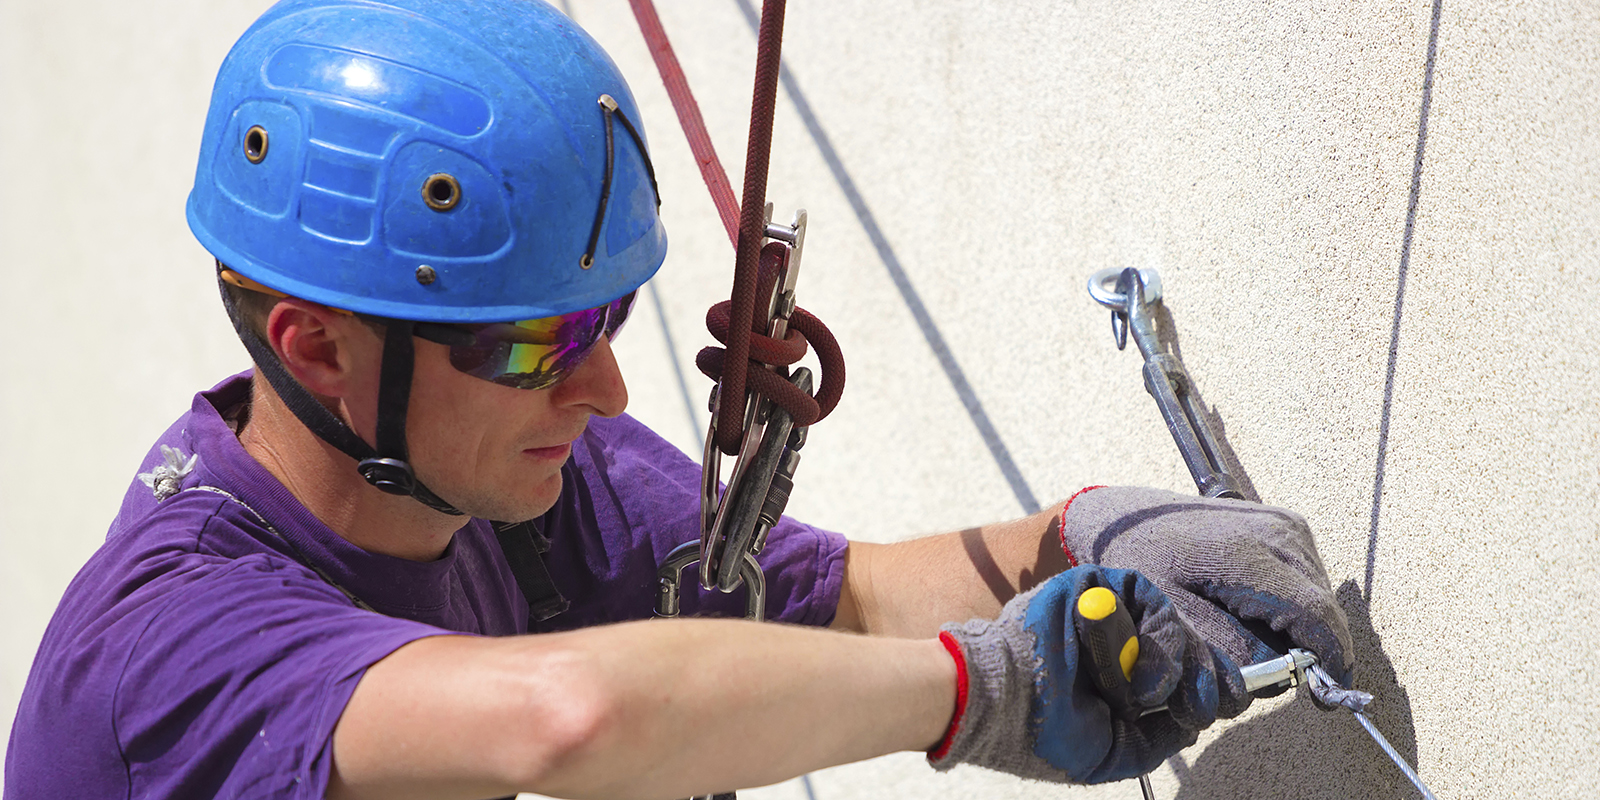 someone taking part in an abseil